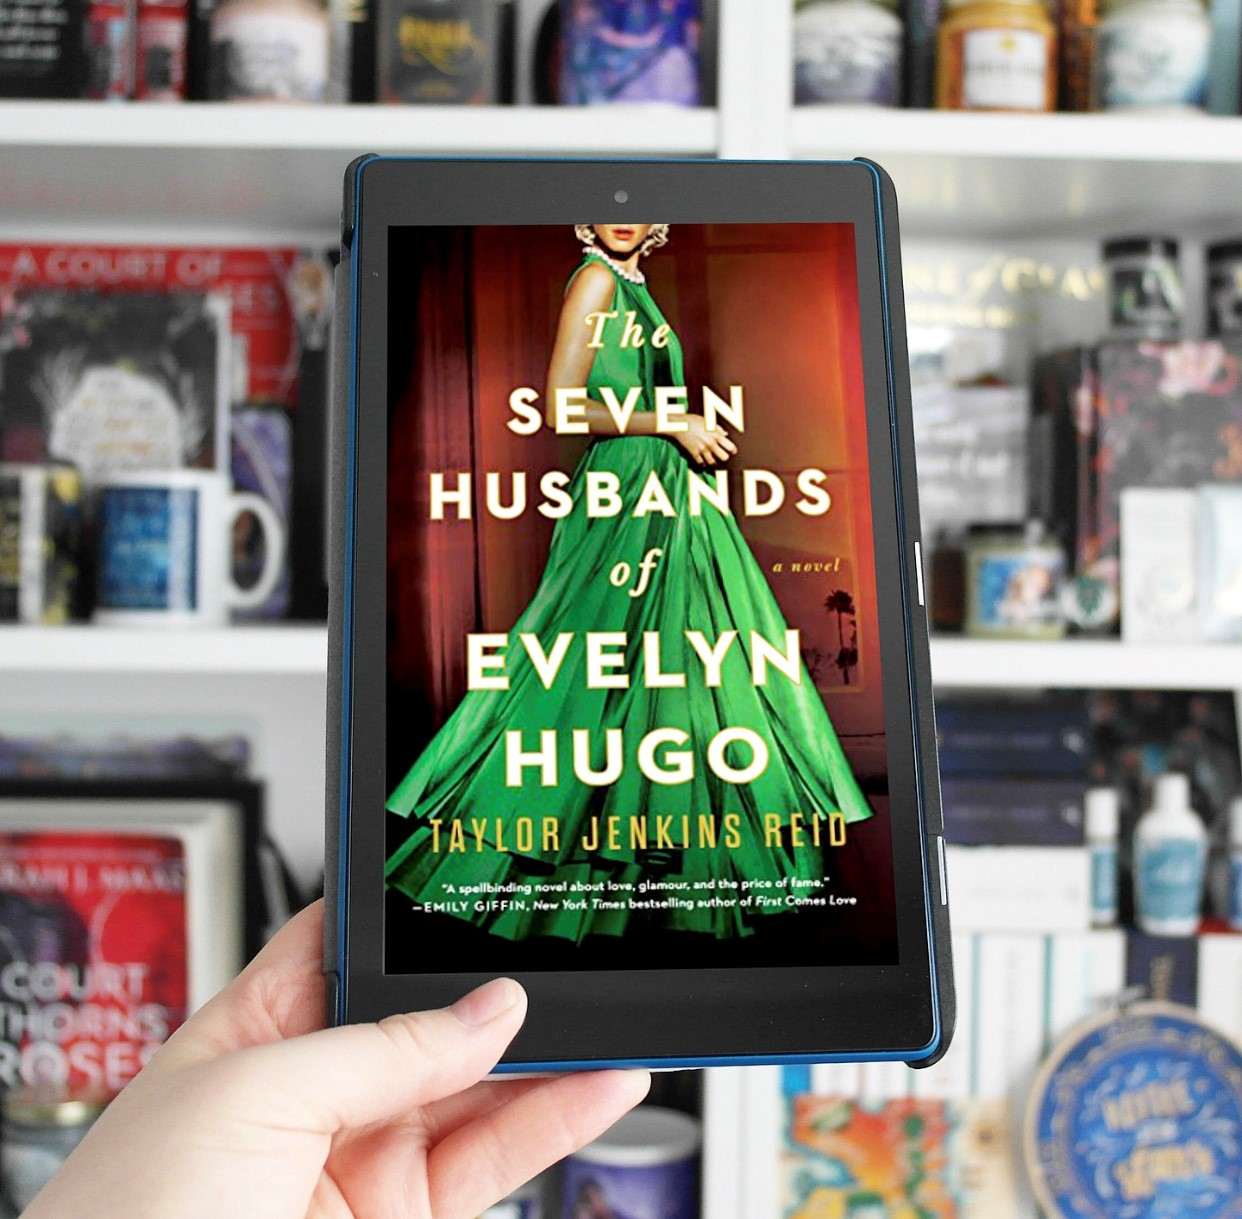 Review of The Seven Husbands of Evelyn Hugo